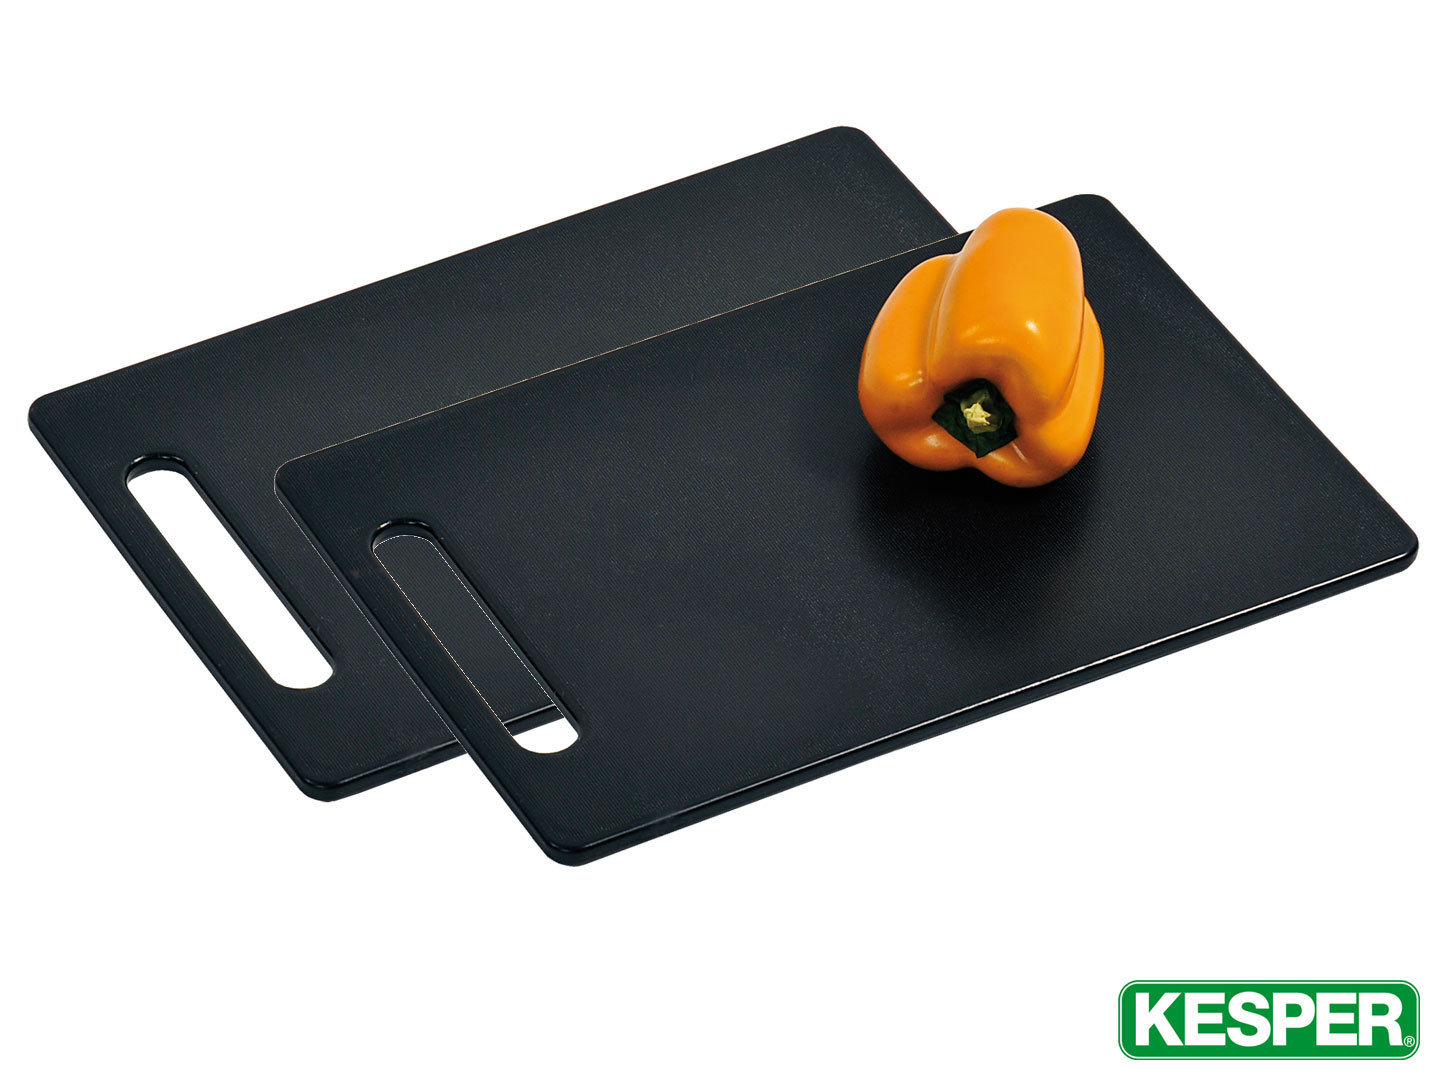 KESPER 2 pcs cutting board set 30 x 20 x 0,8 cm black plastic